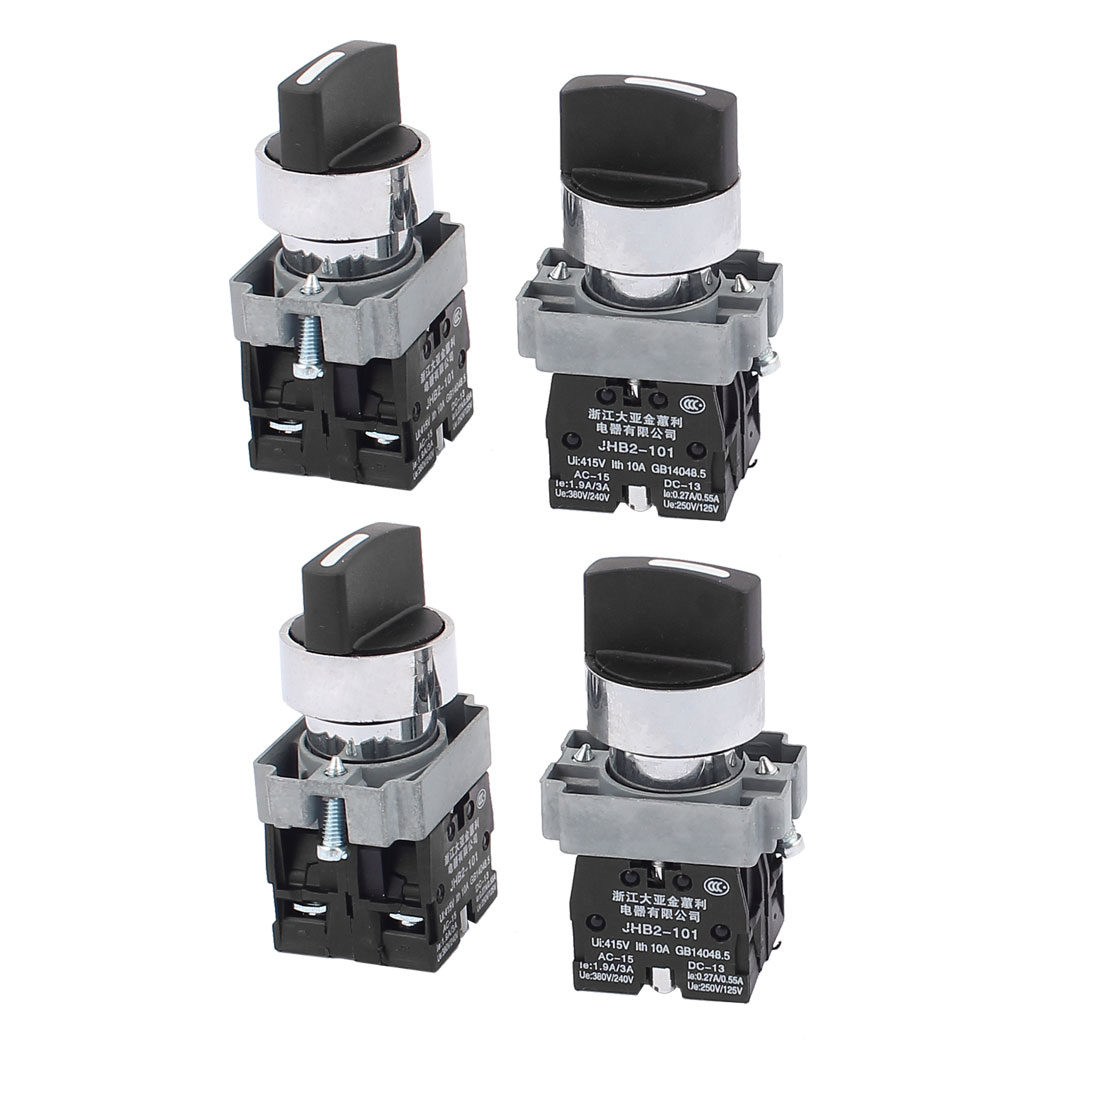 AC 415V 10A Latching 2NO 3 Positions Rotary Selector Switch 4PCS